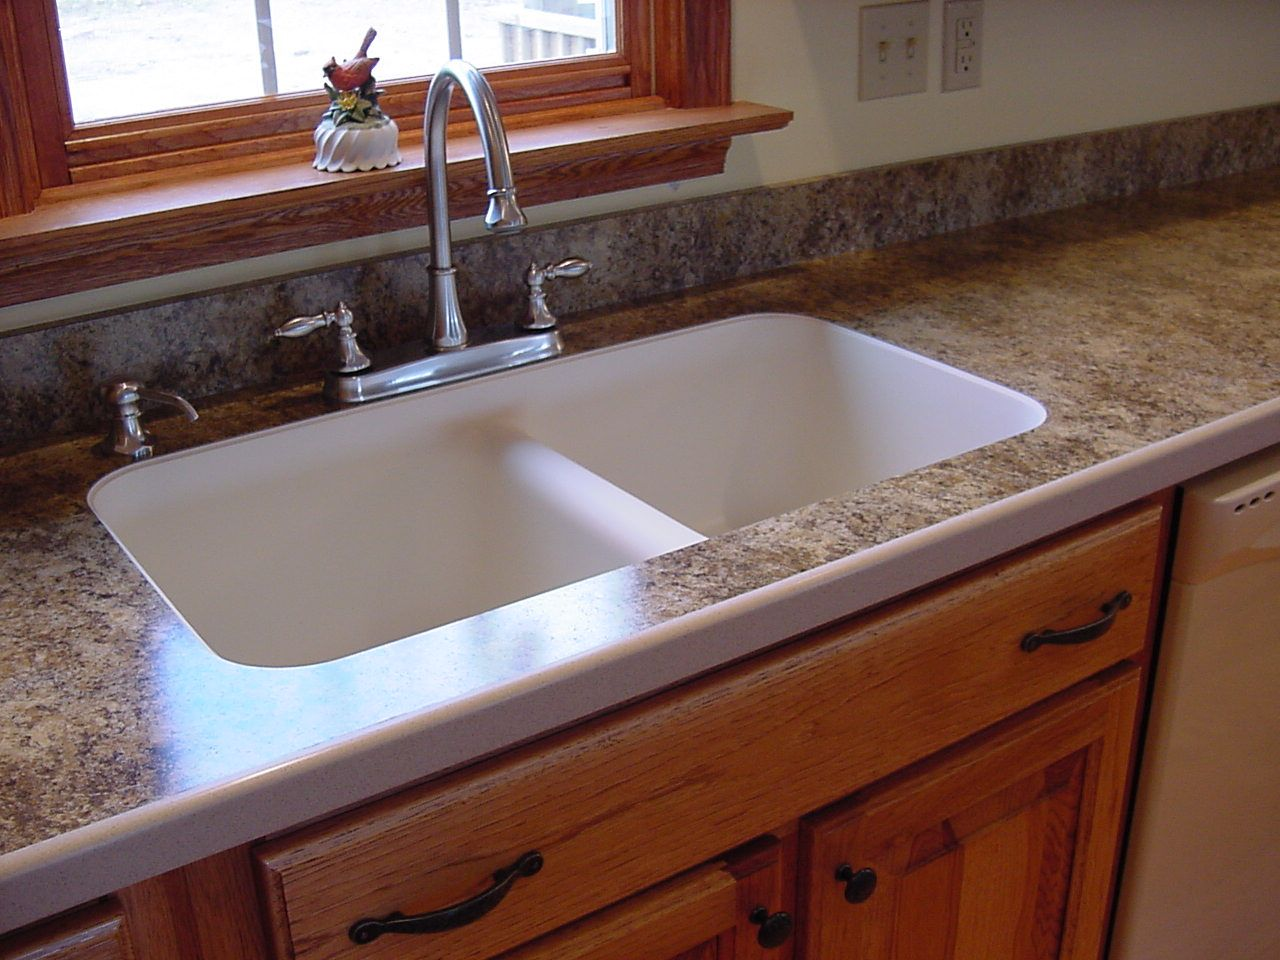 Concrete Countertop Manufacturers Postform Countertops Kitchen Designs Find Suppliers